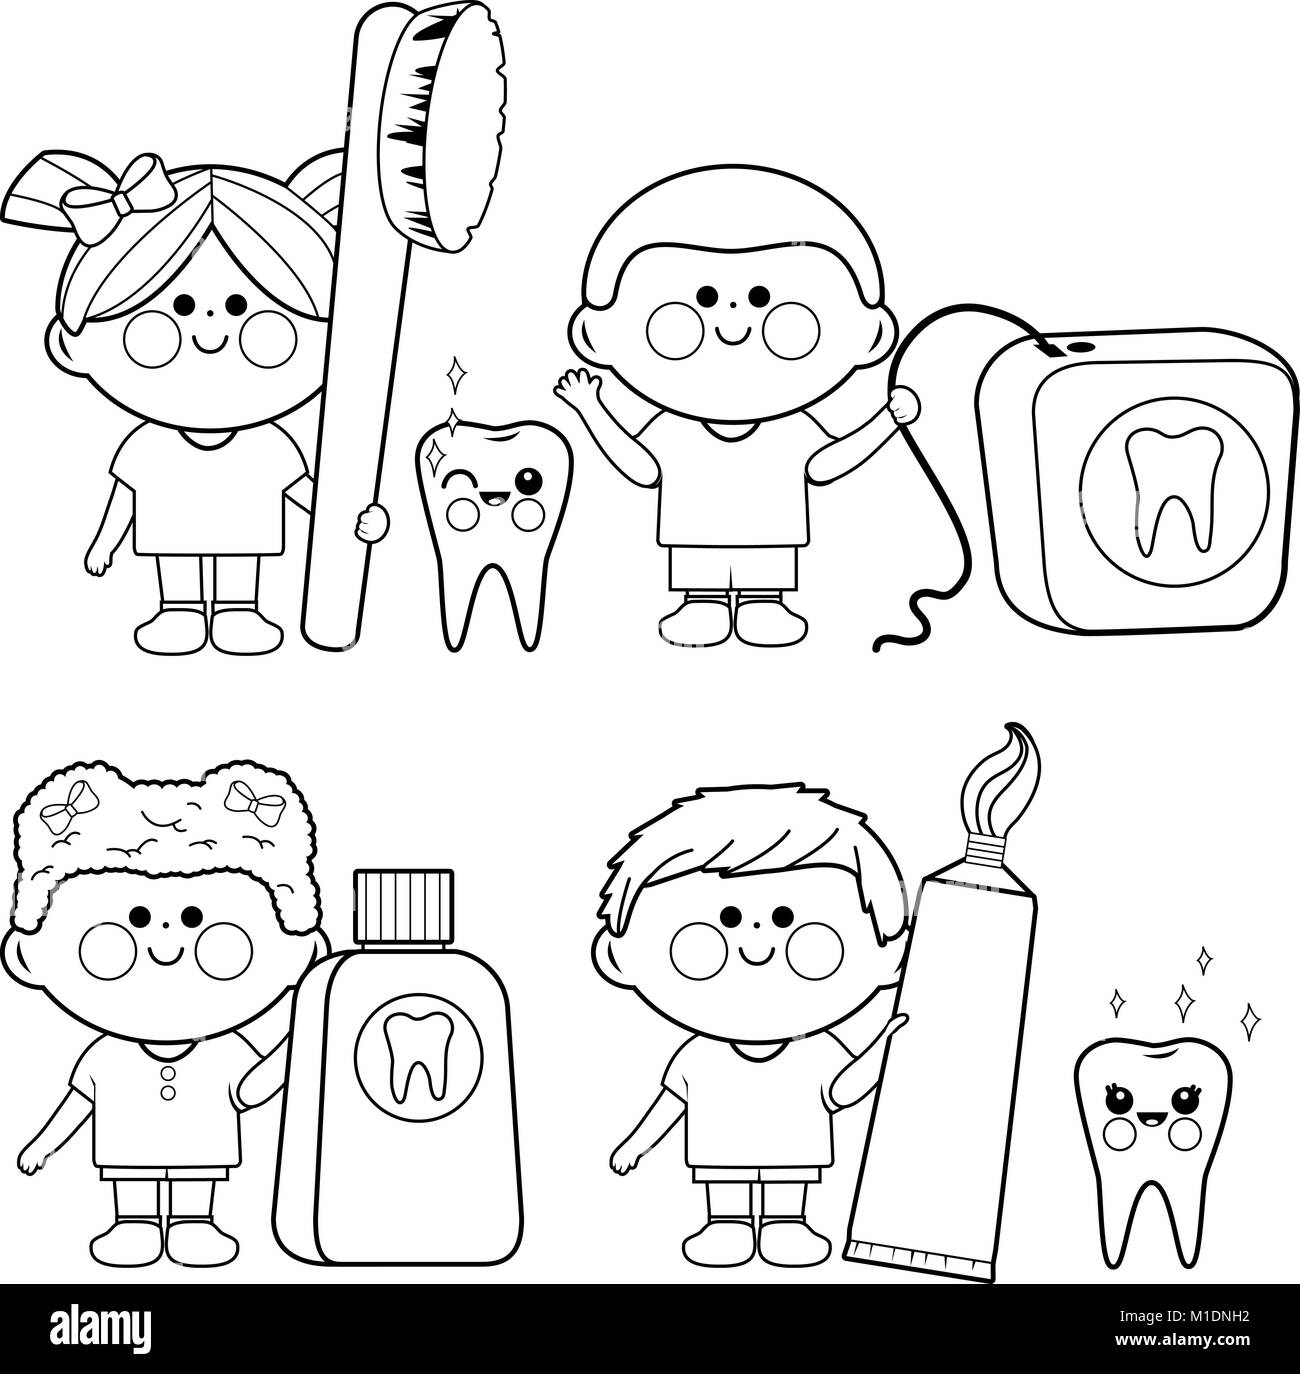 Cartoon Objects Coloring Page Imágenes De Stock & Cartoon Objects ...